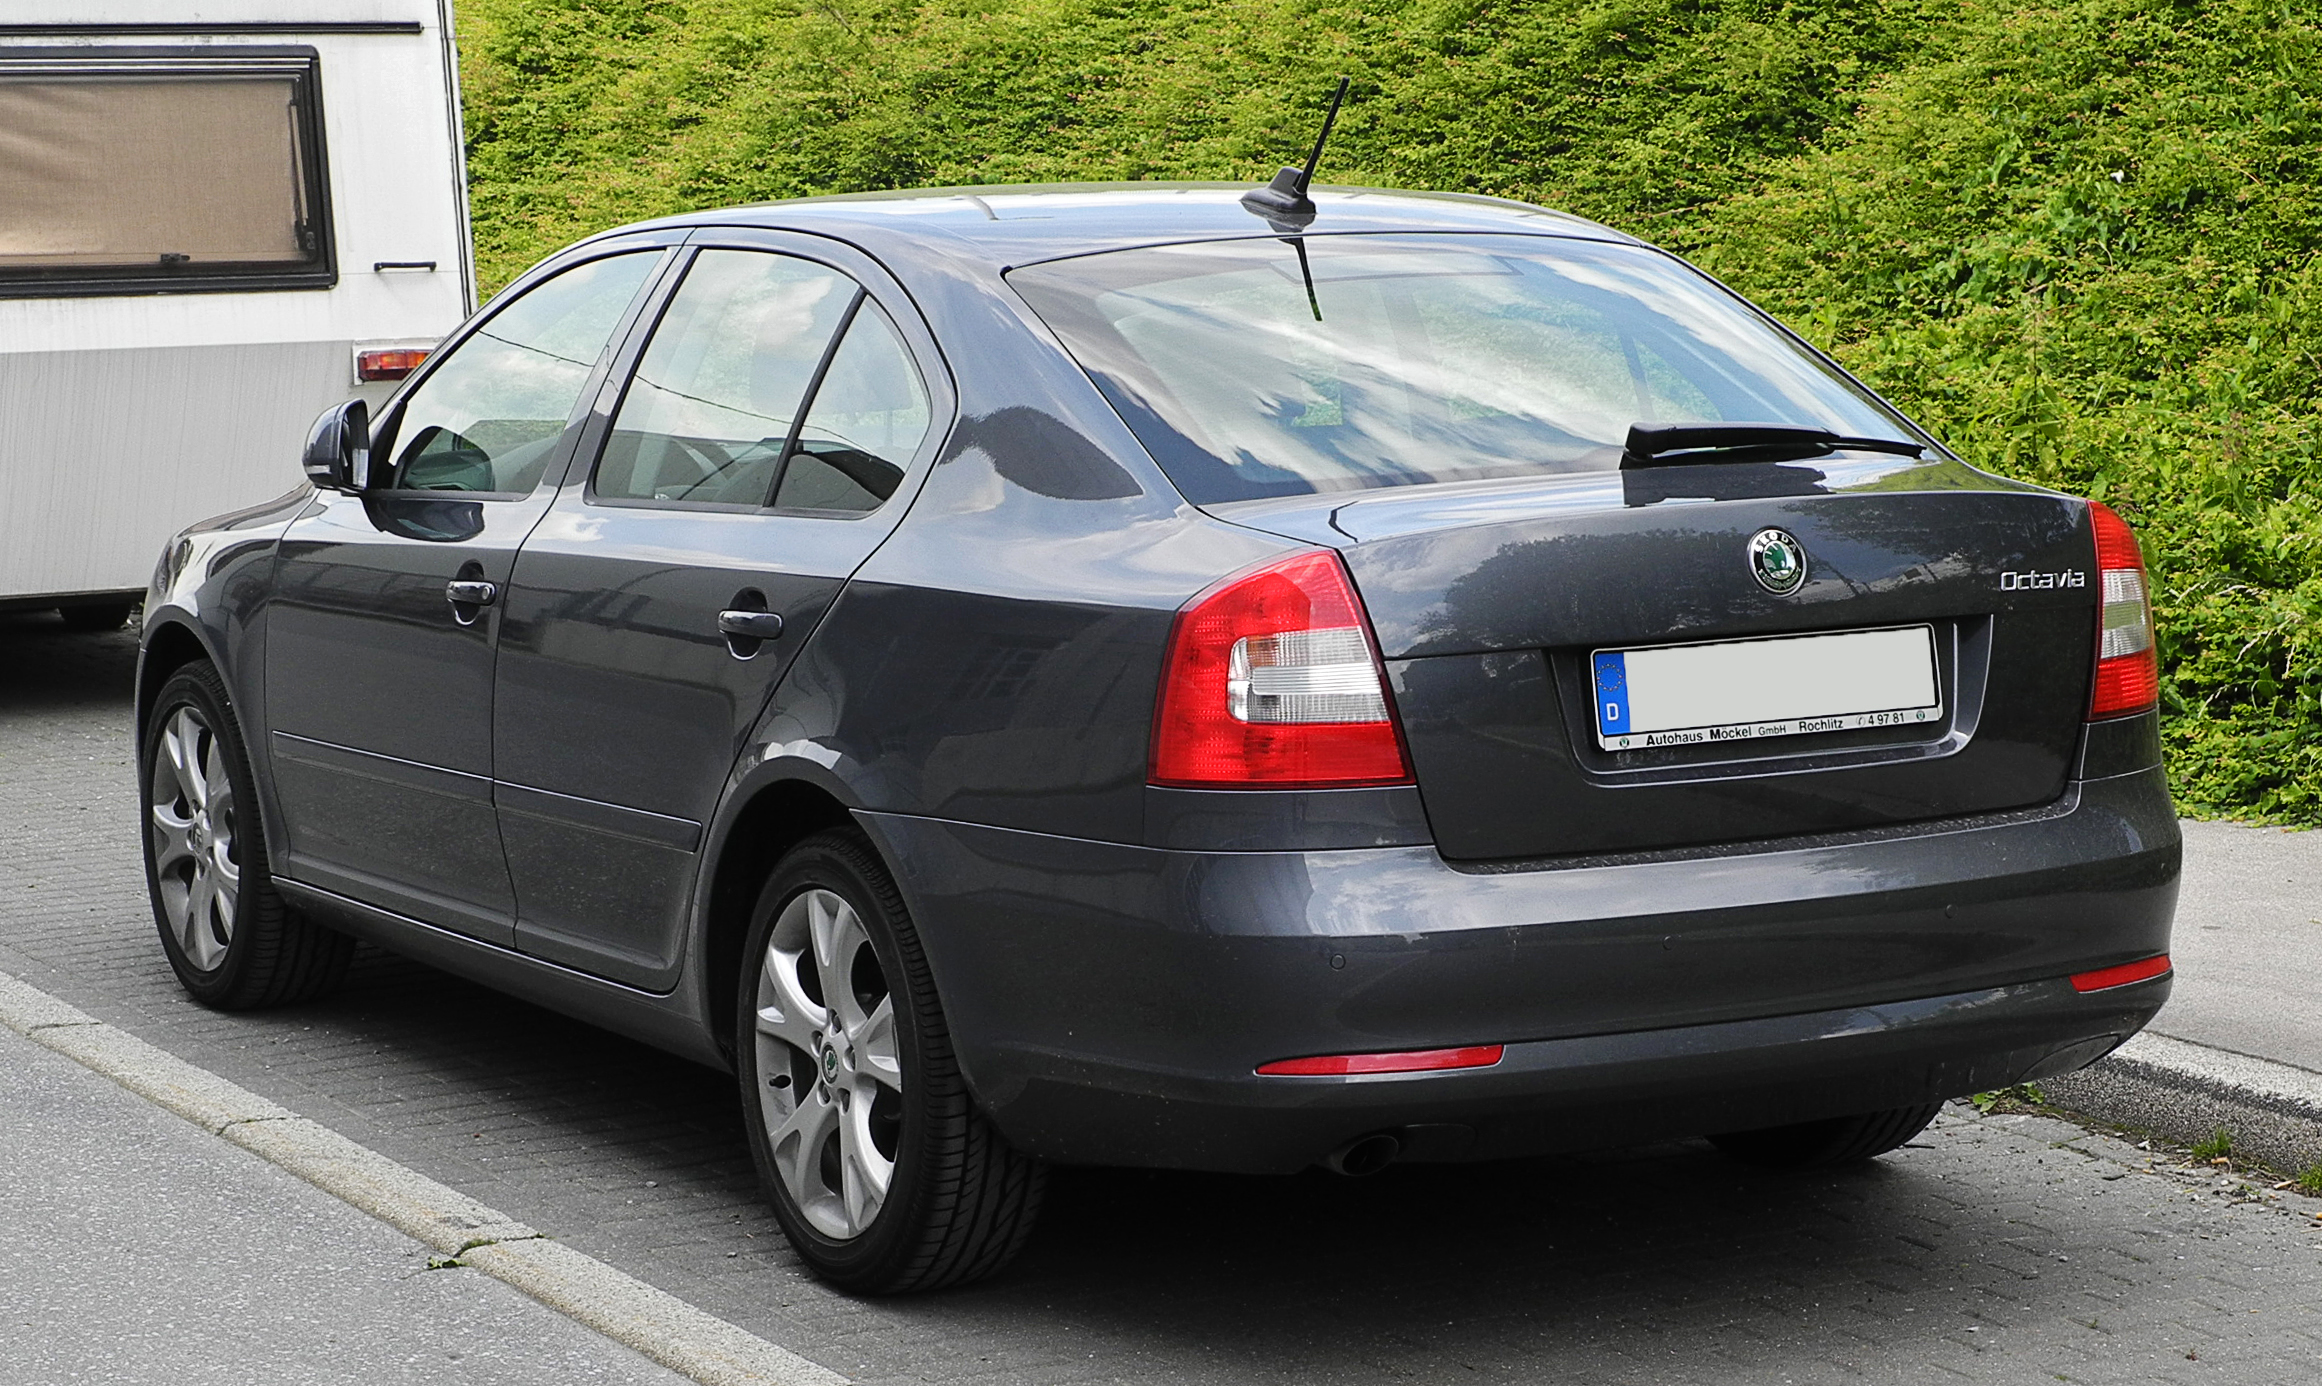 file skoda octavia ii facelift heckansicht 12 juni. Black Bedroom Furniture Sets. Home Design Ideas